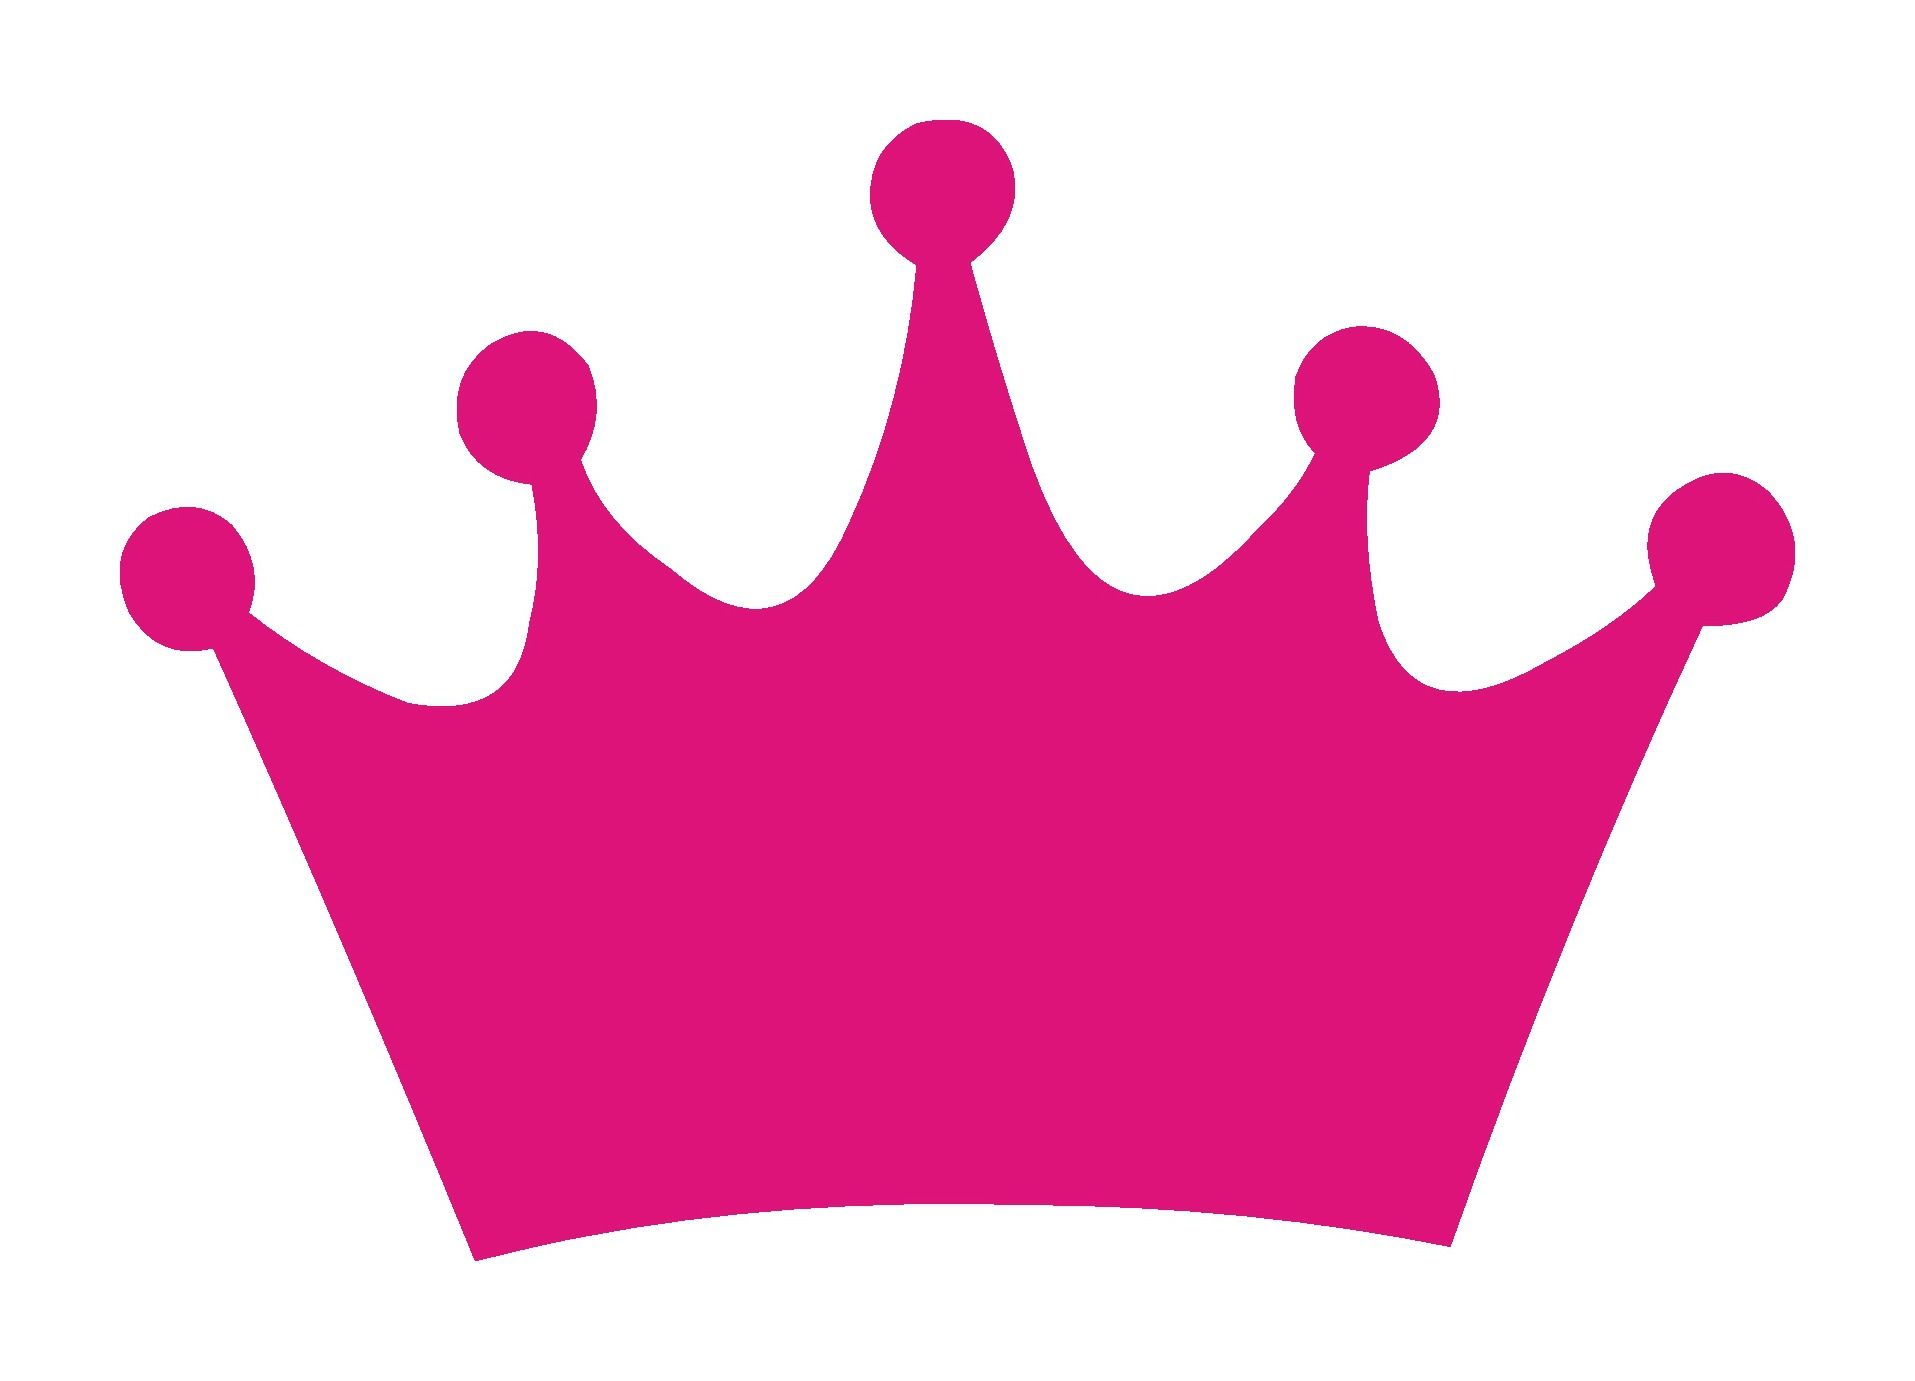 princess crown silhouette clip art at getdrawings com free for rh getdrawings com crown clipart png crown clipart png